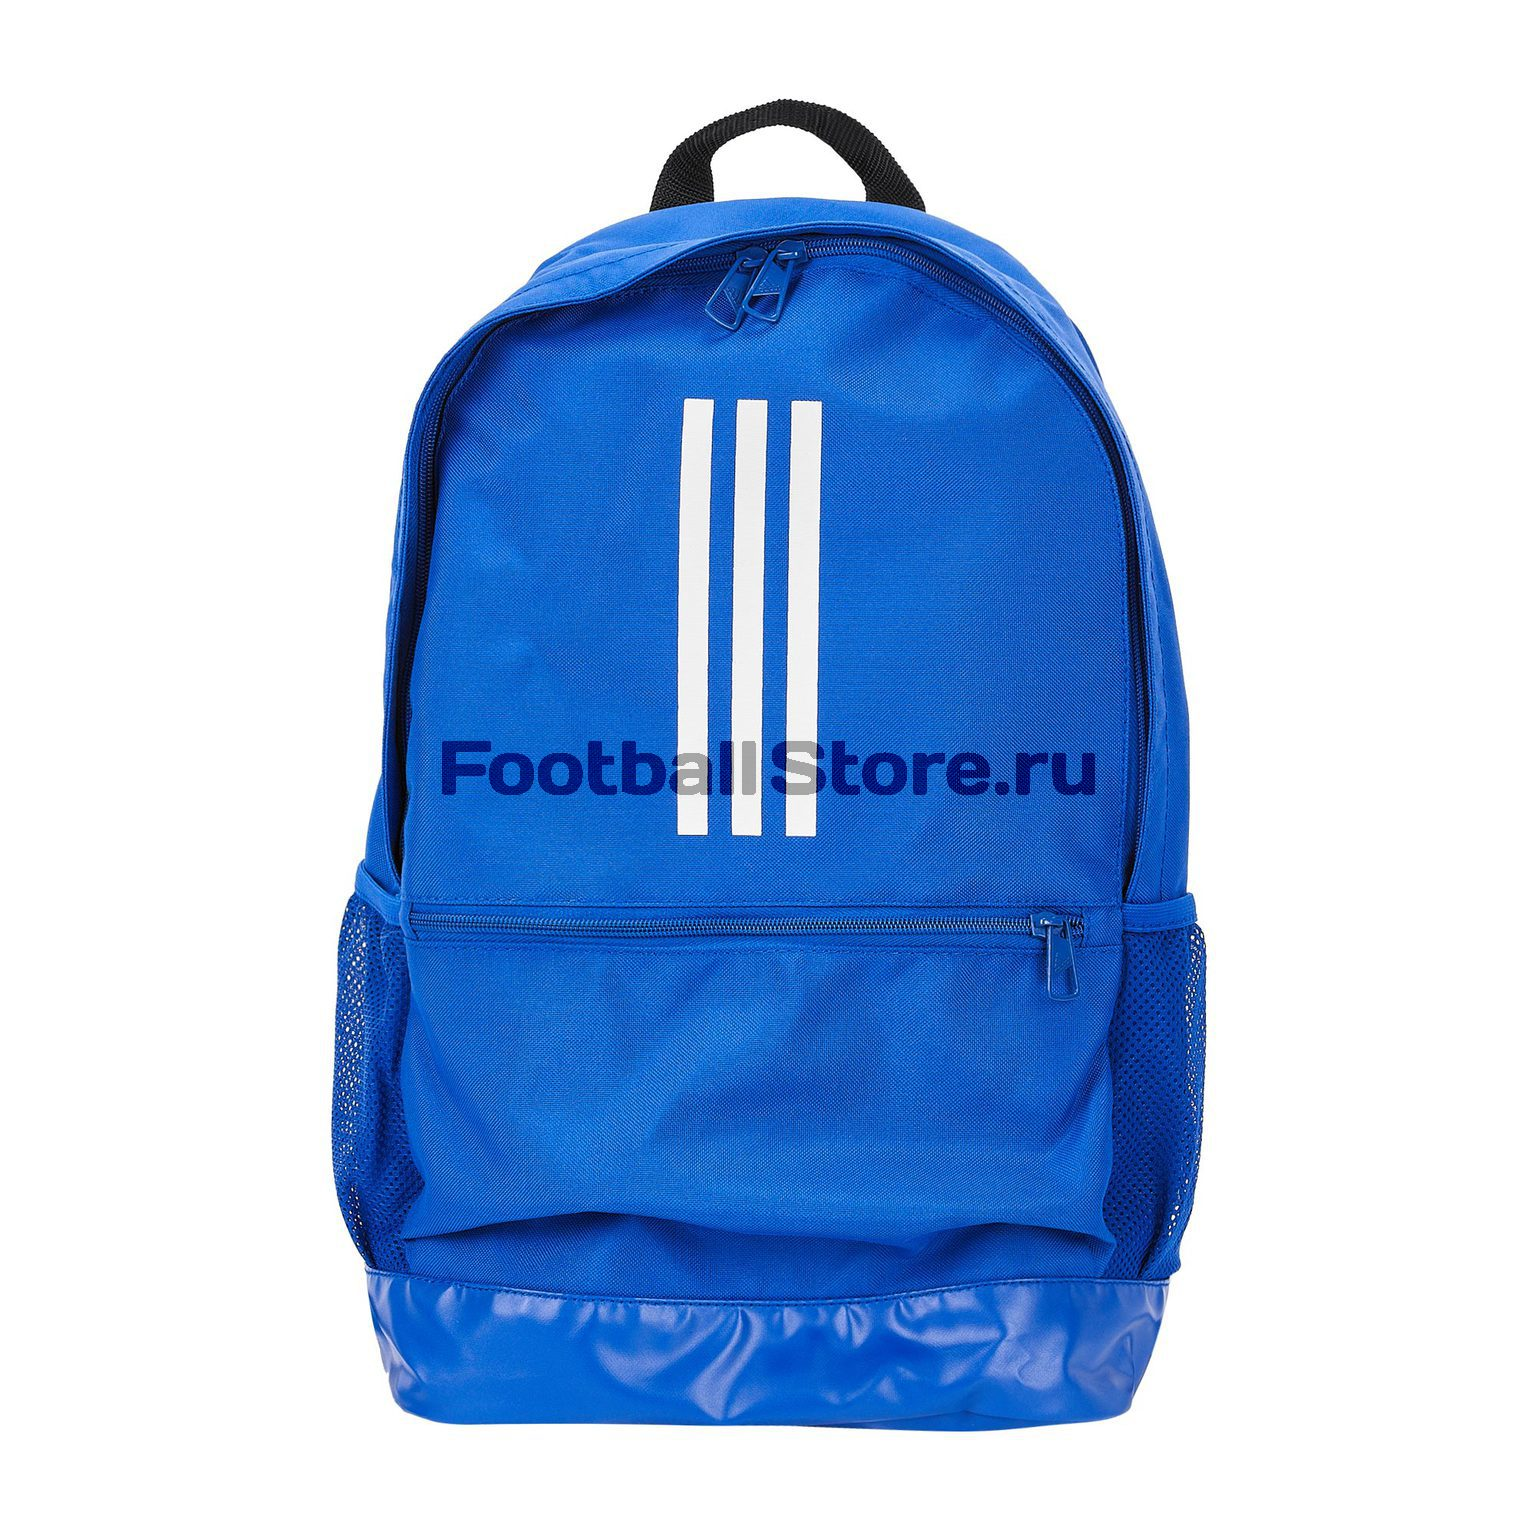 Рюкзак Adidas Tiro Backpack DU1996 рюкзак adidas tiro ballnet b46132